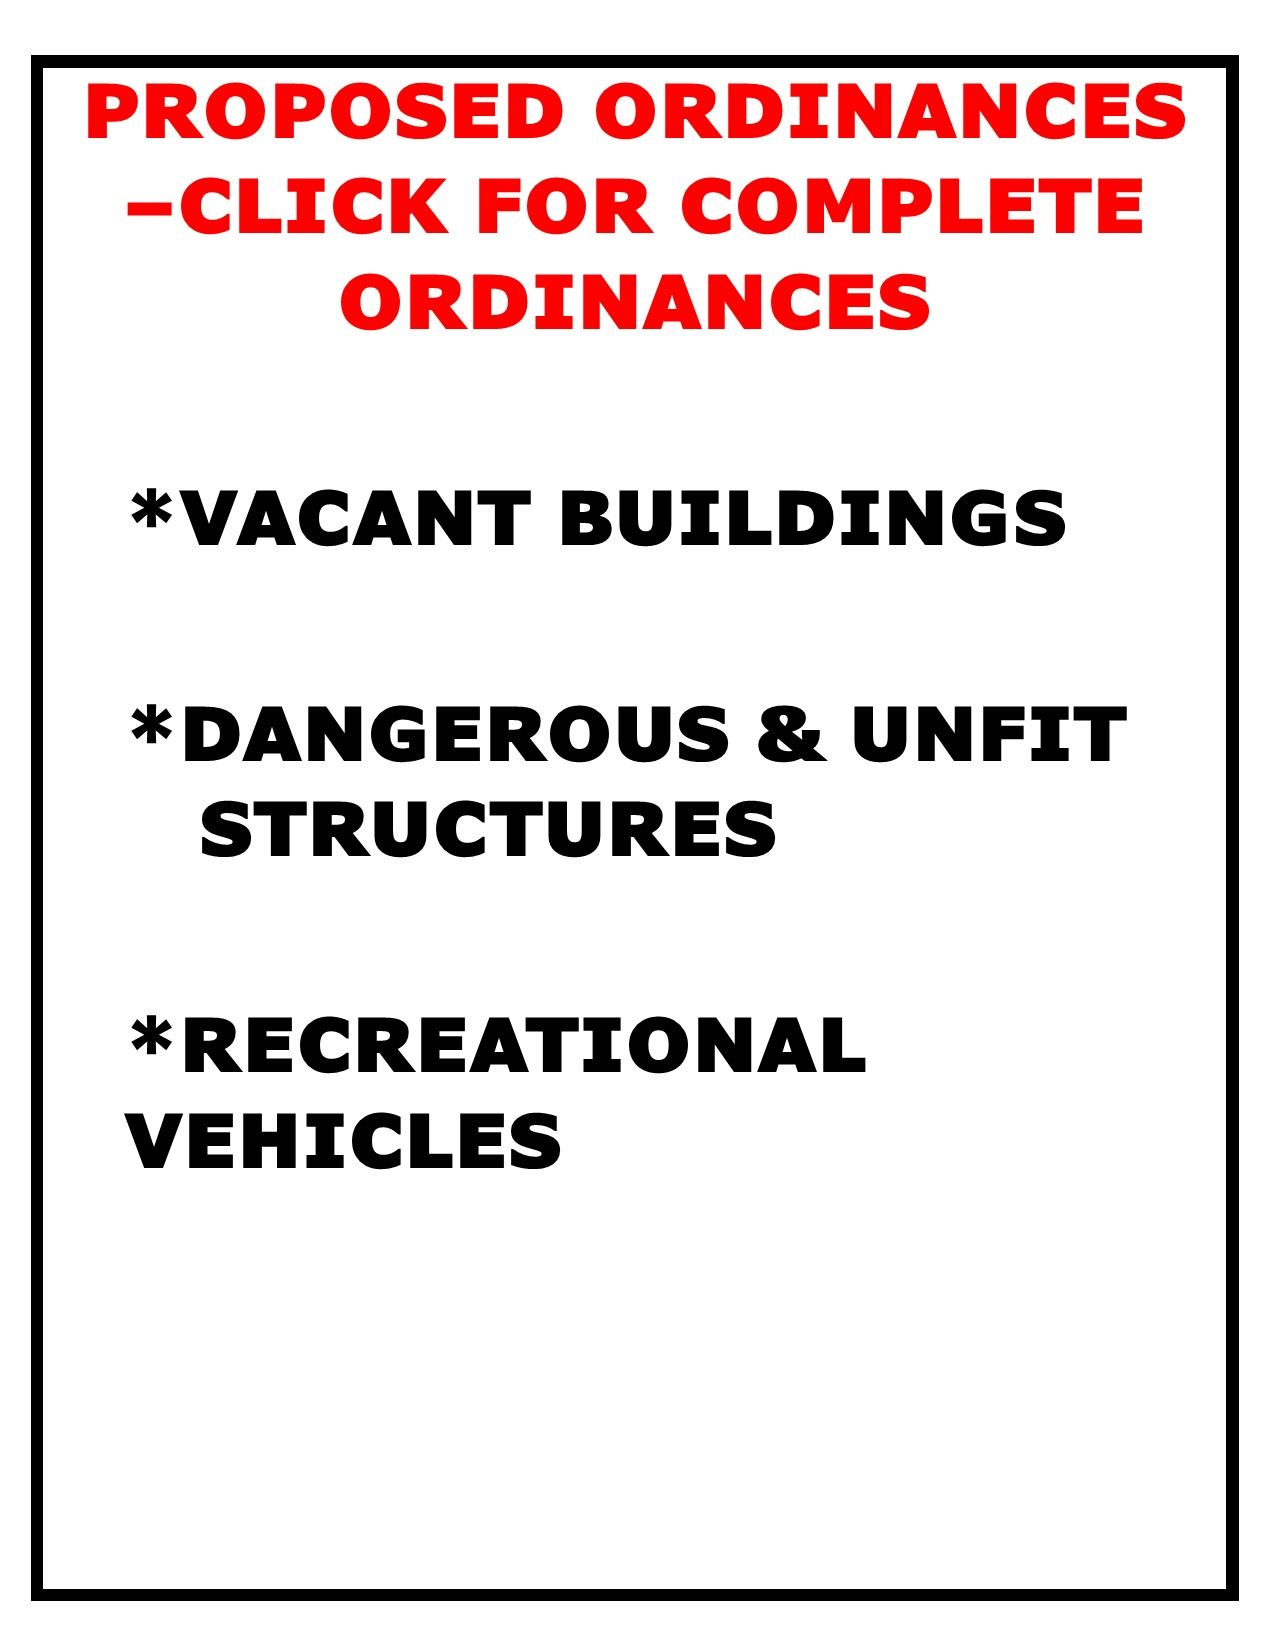 PROPOSED ORDINANCES